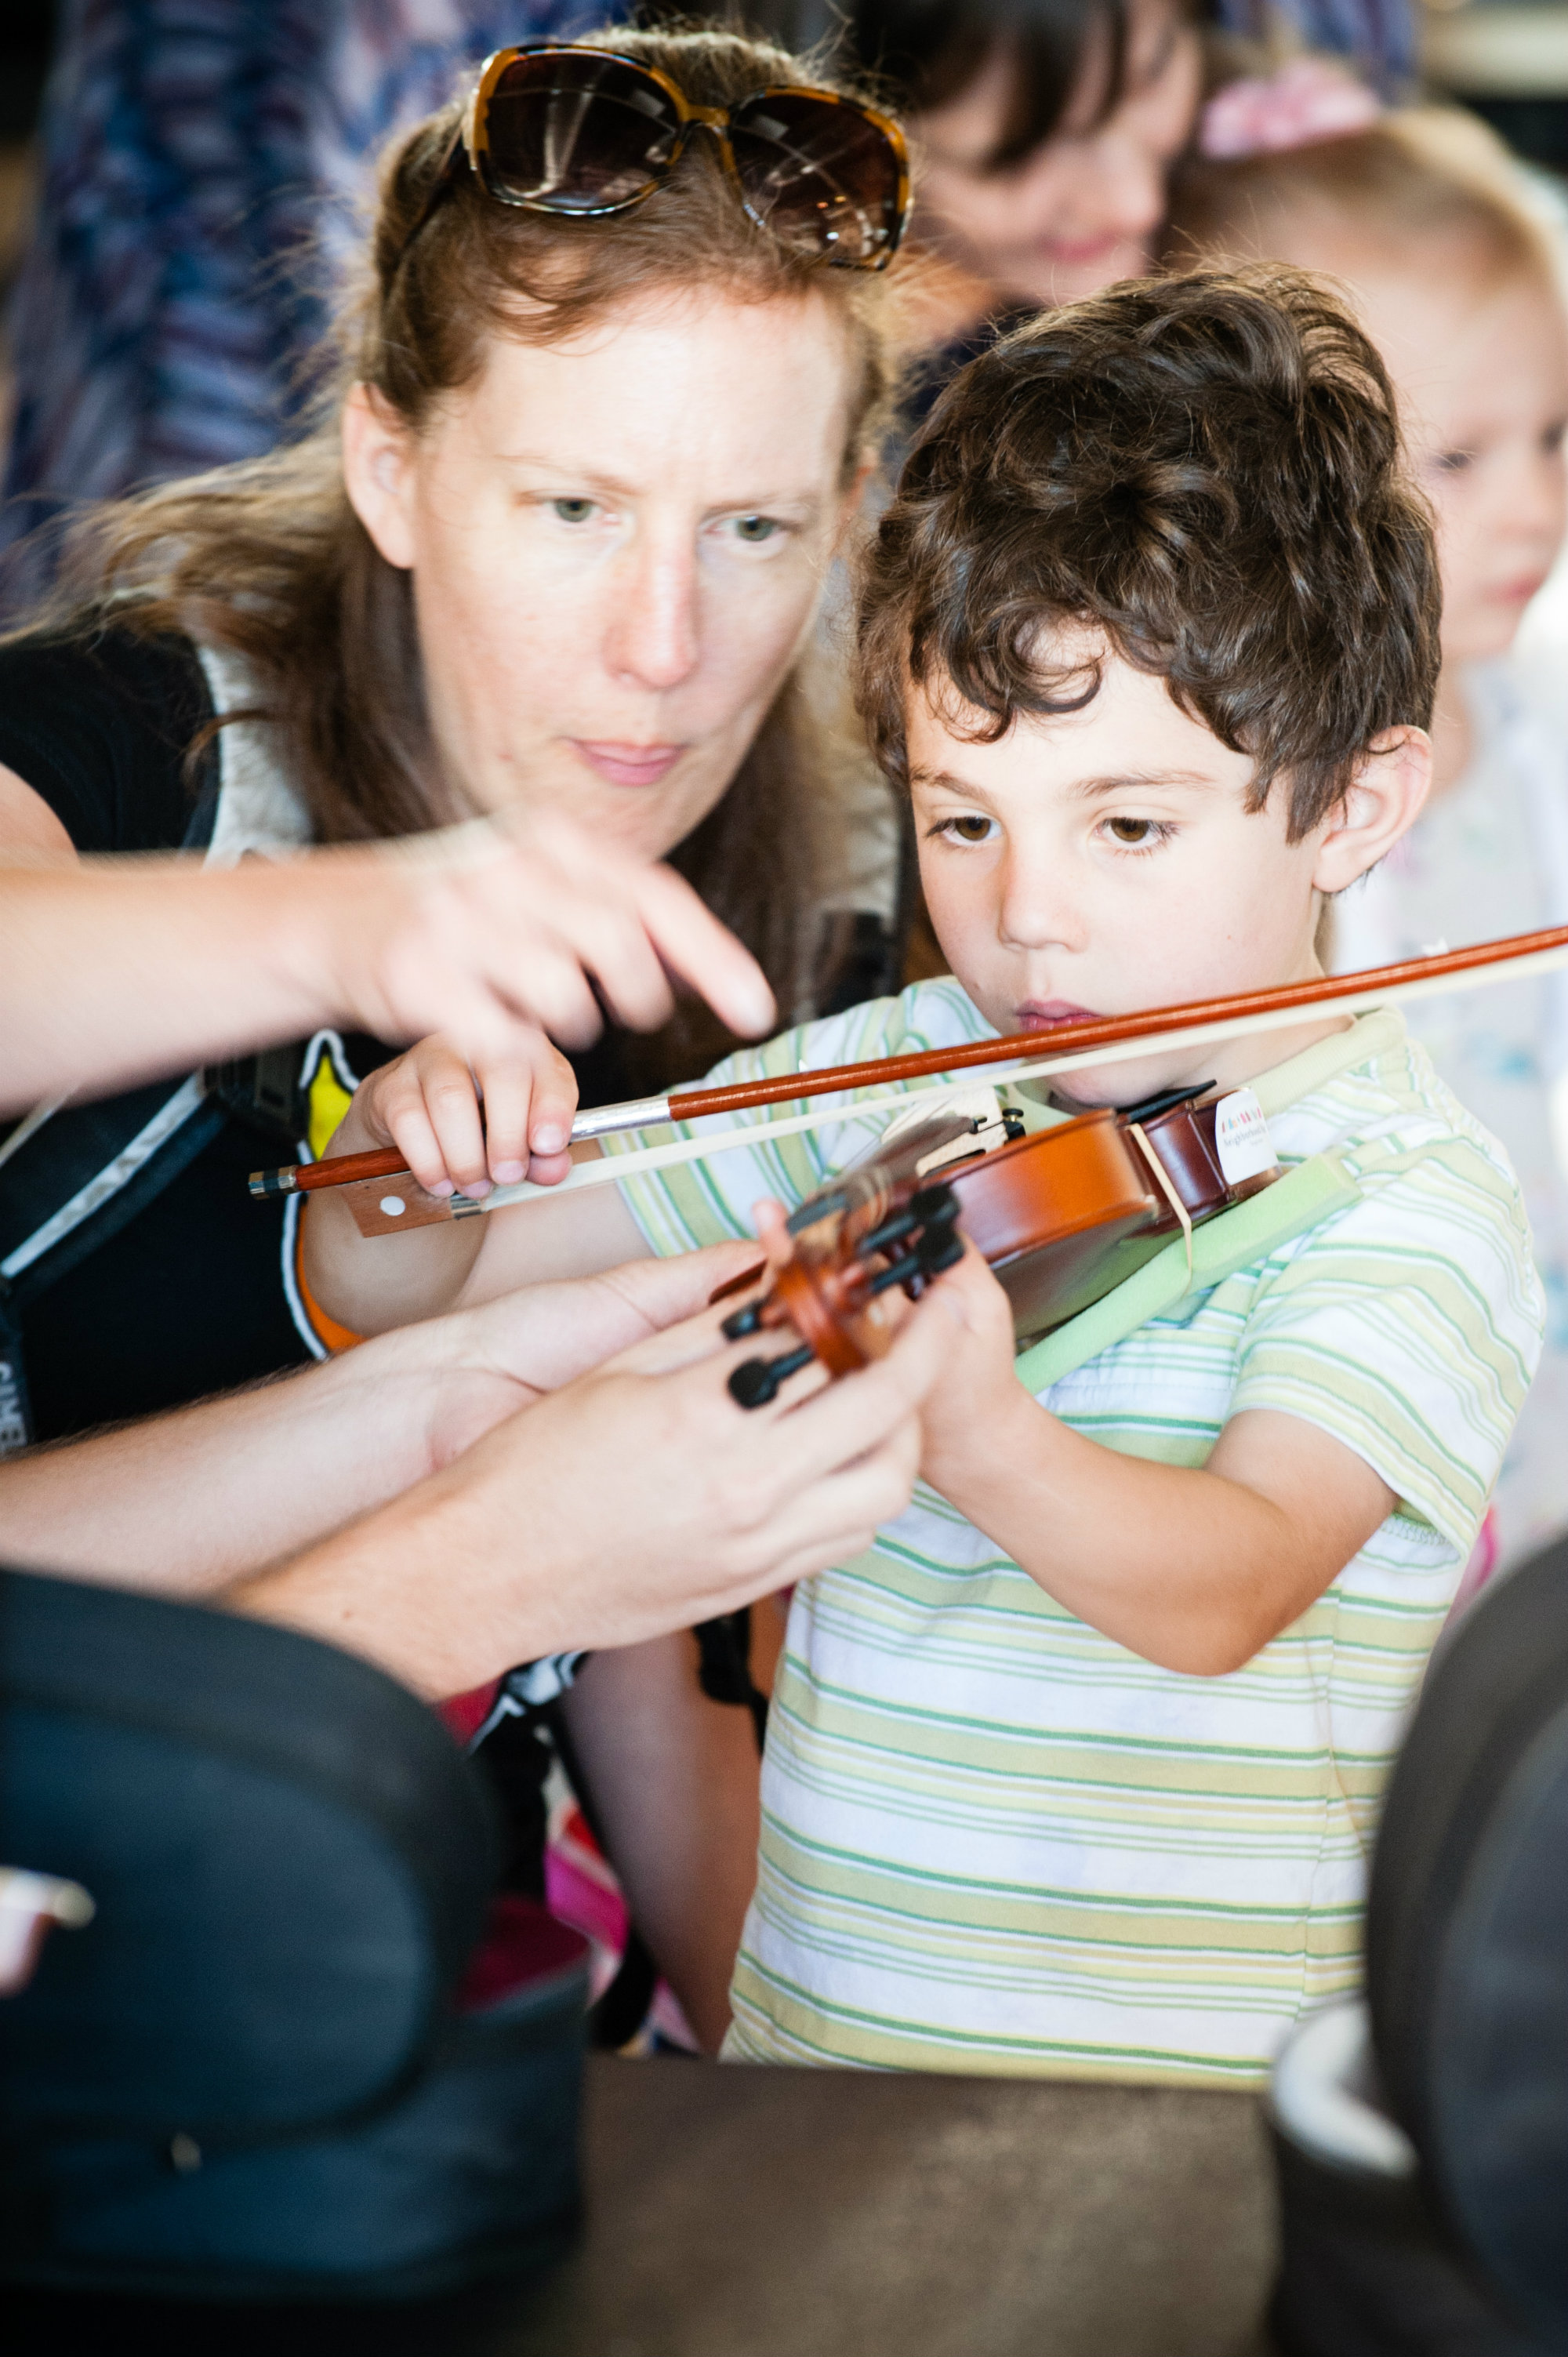 <p>An impromptu violin lesson at Inside the Orchestra's instrument petting zoo.</p>